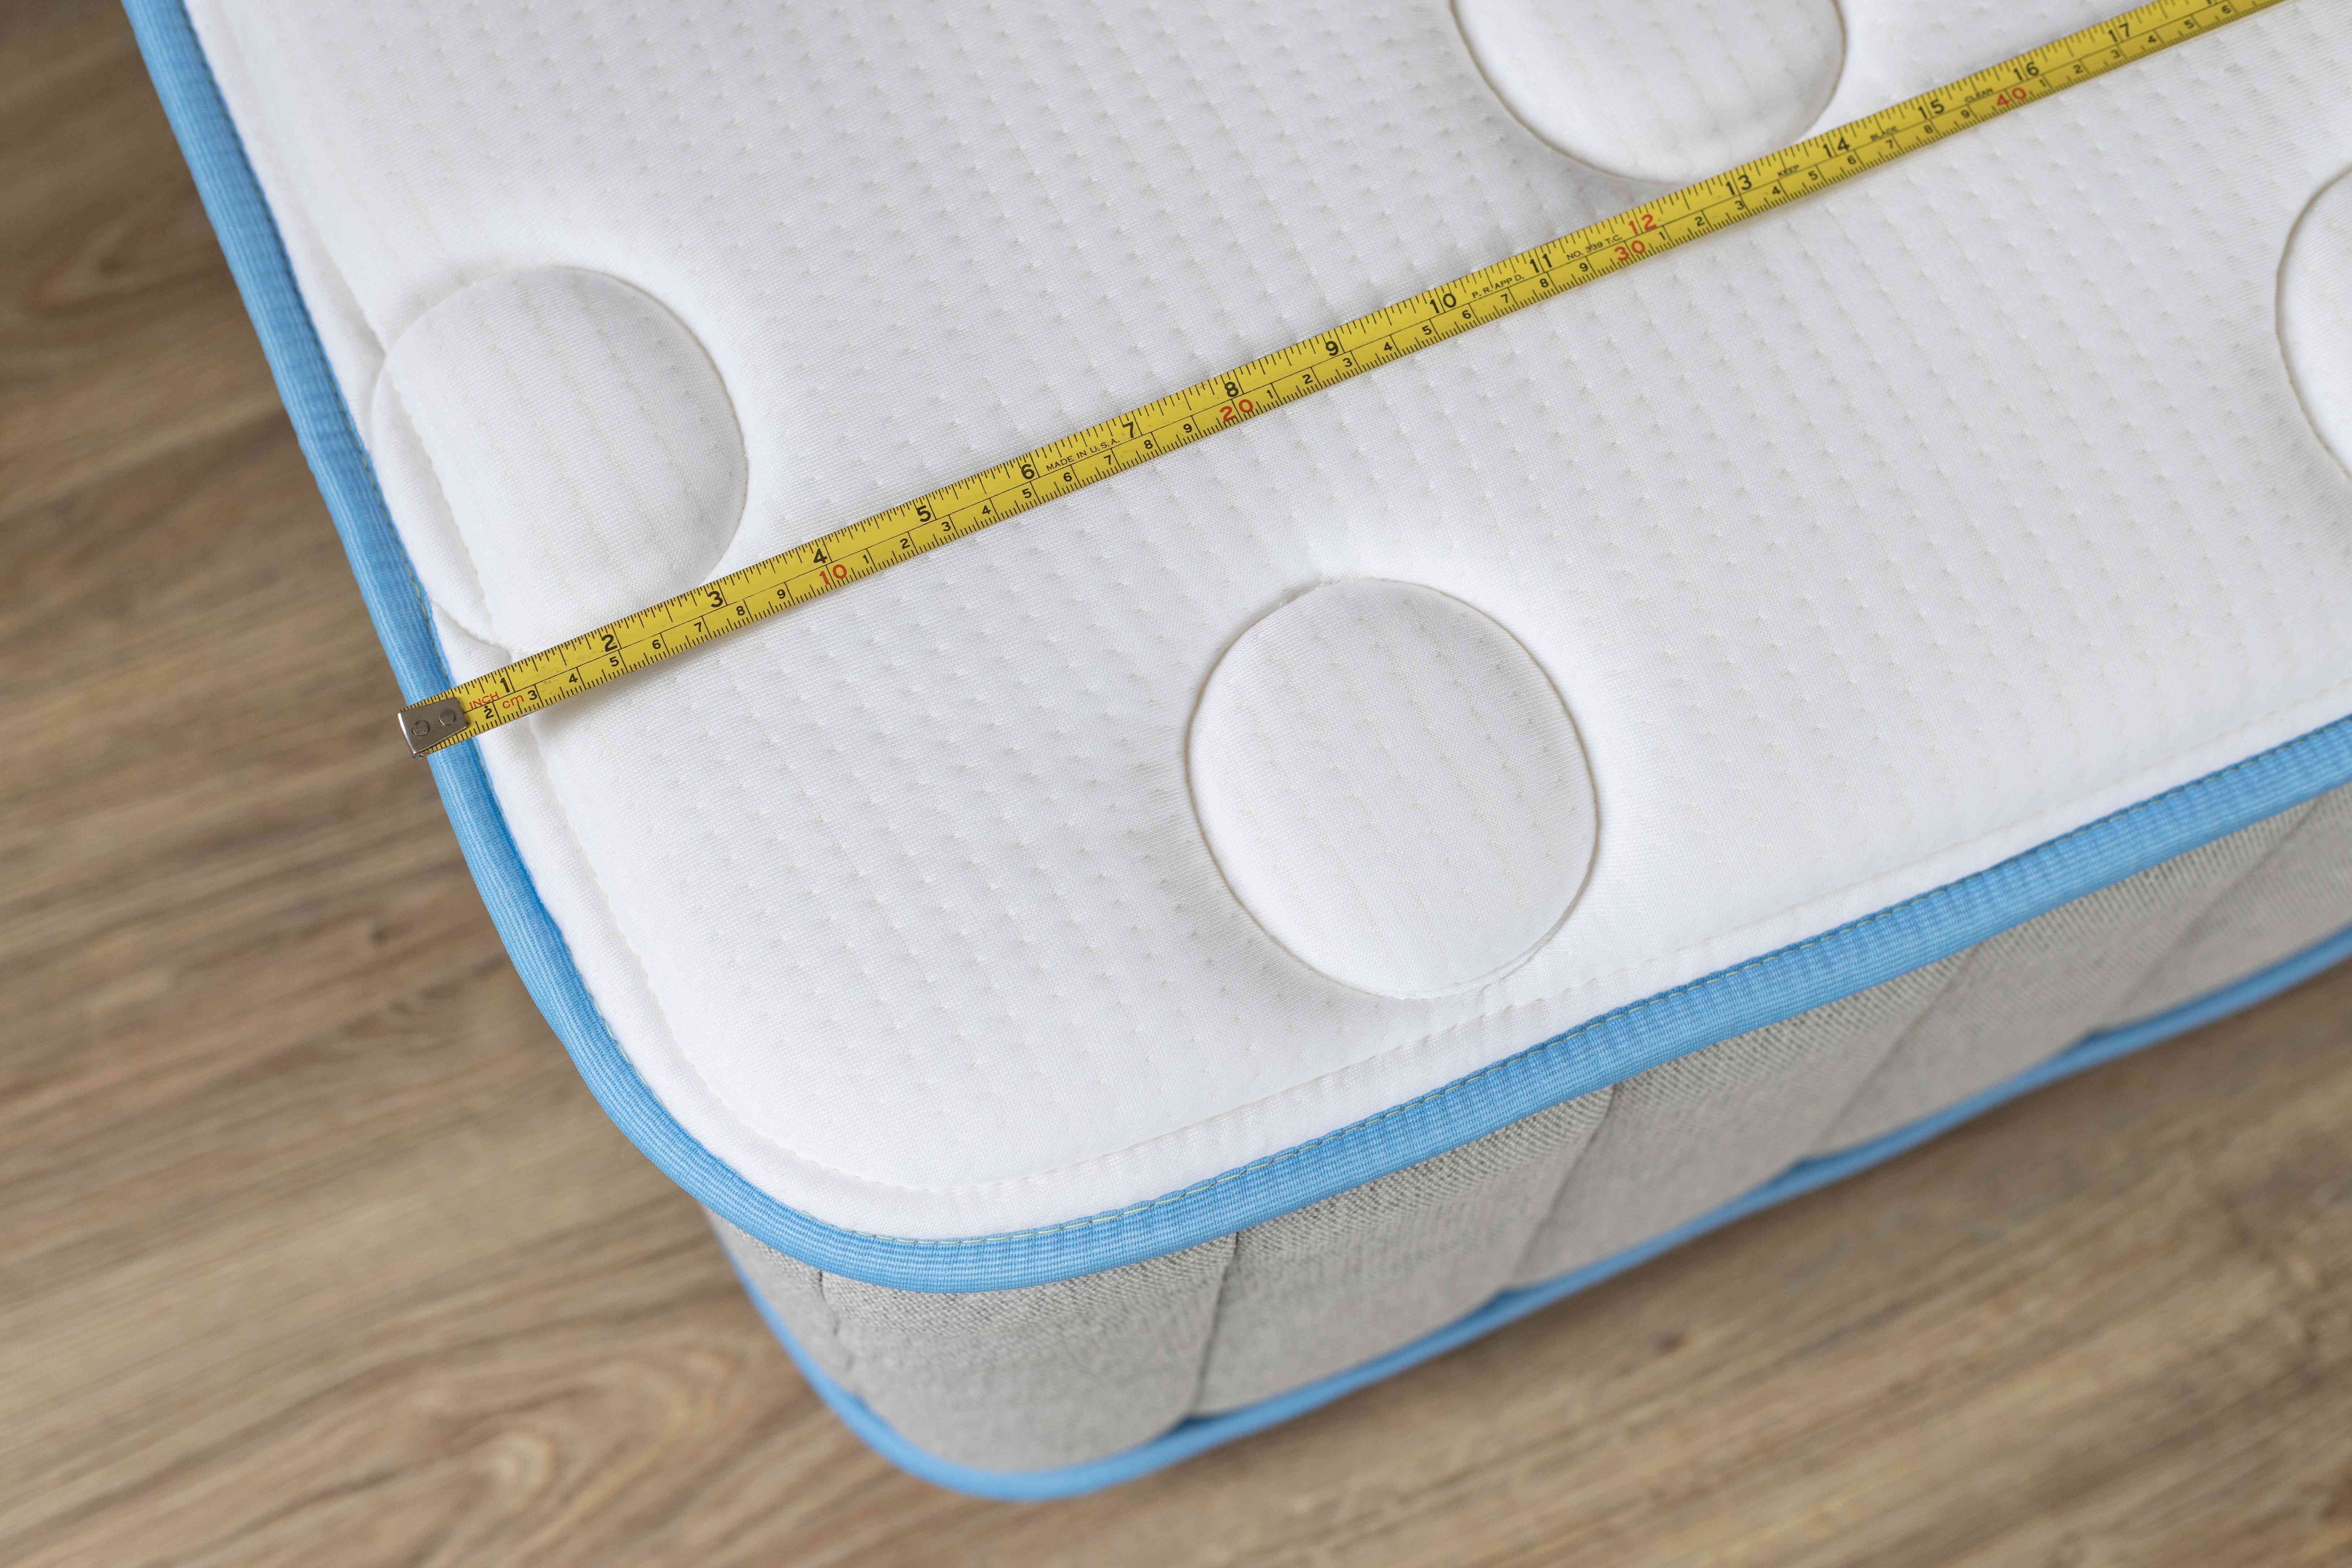 Corner of mattress with yellow measuring tape to measure for mattress bag size